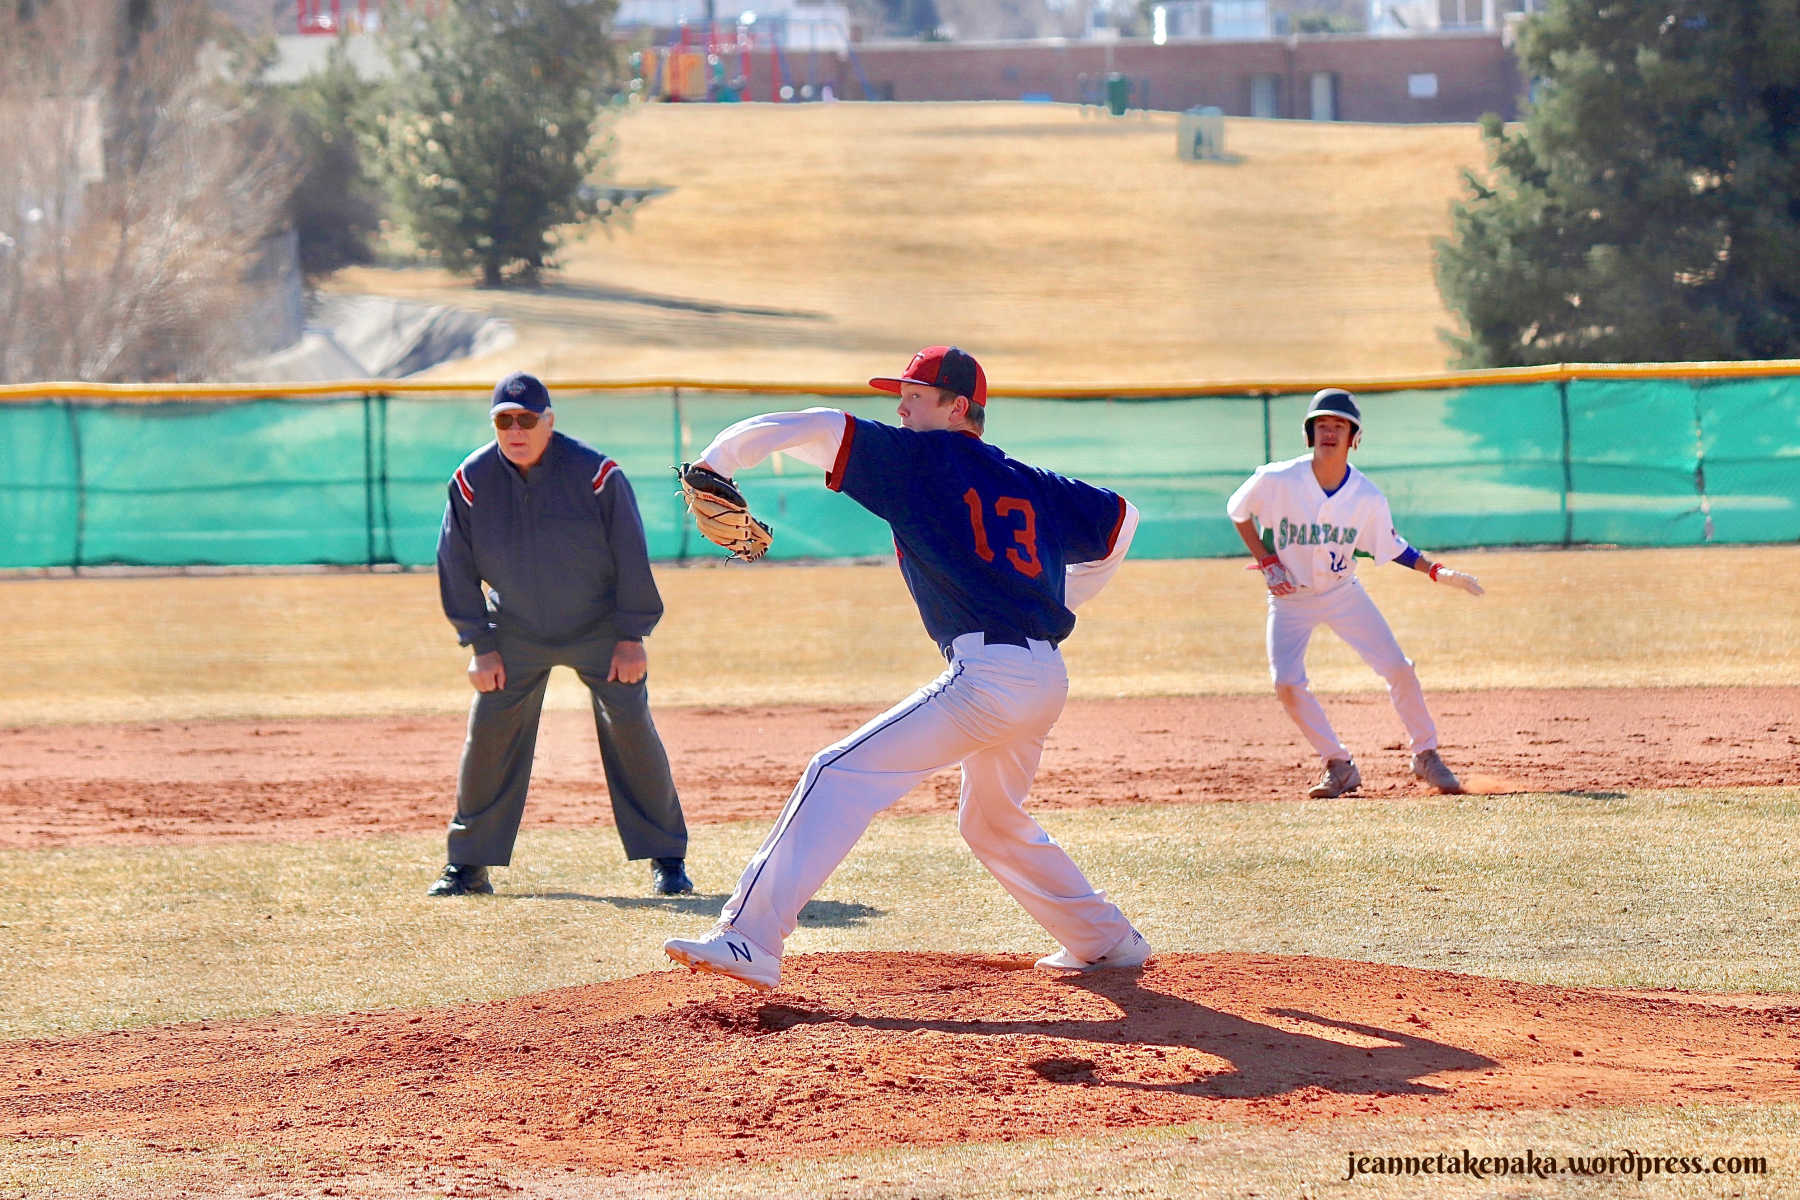 Perspective: Pitcher in motion pitching a baseball